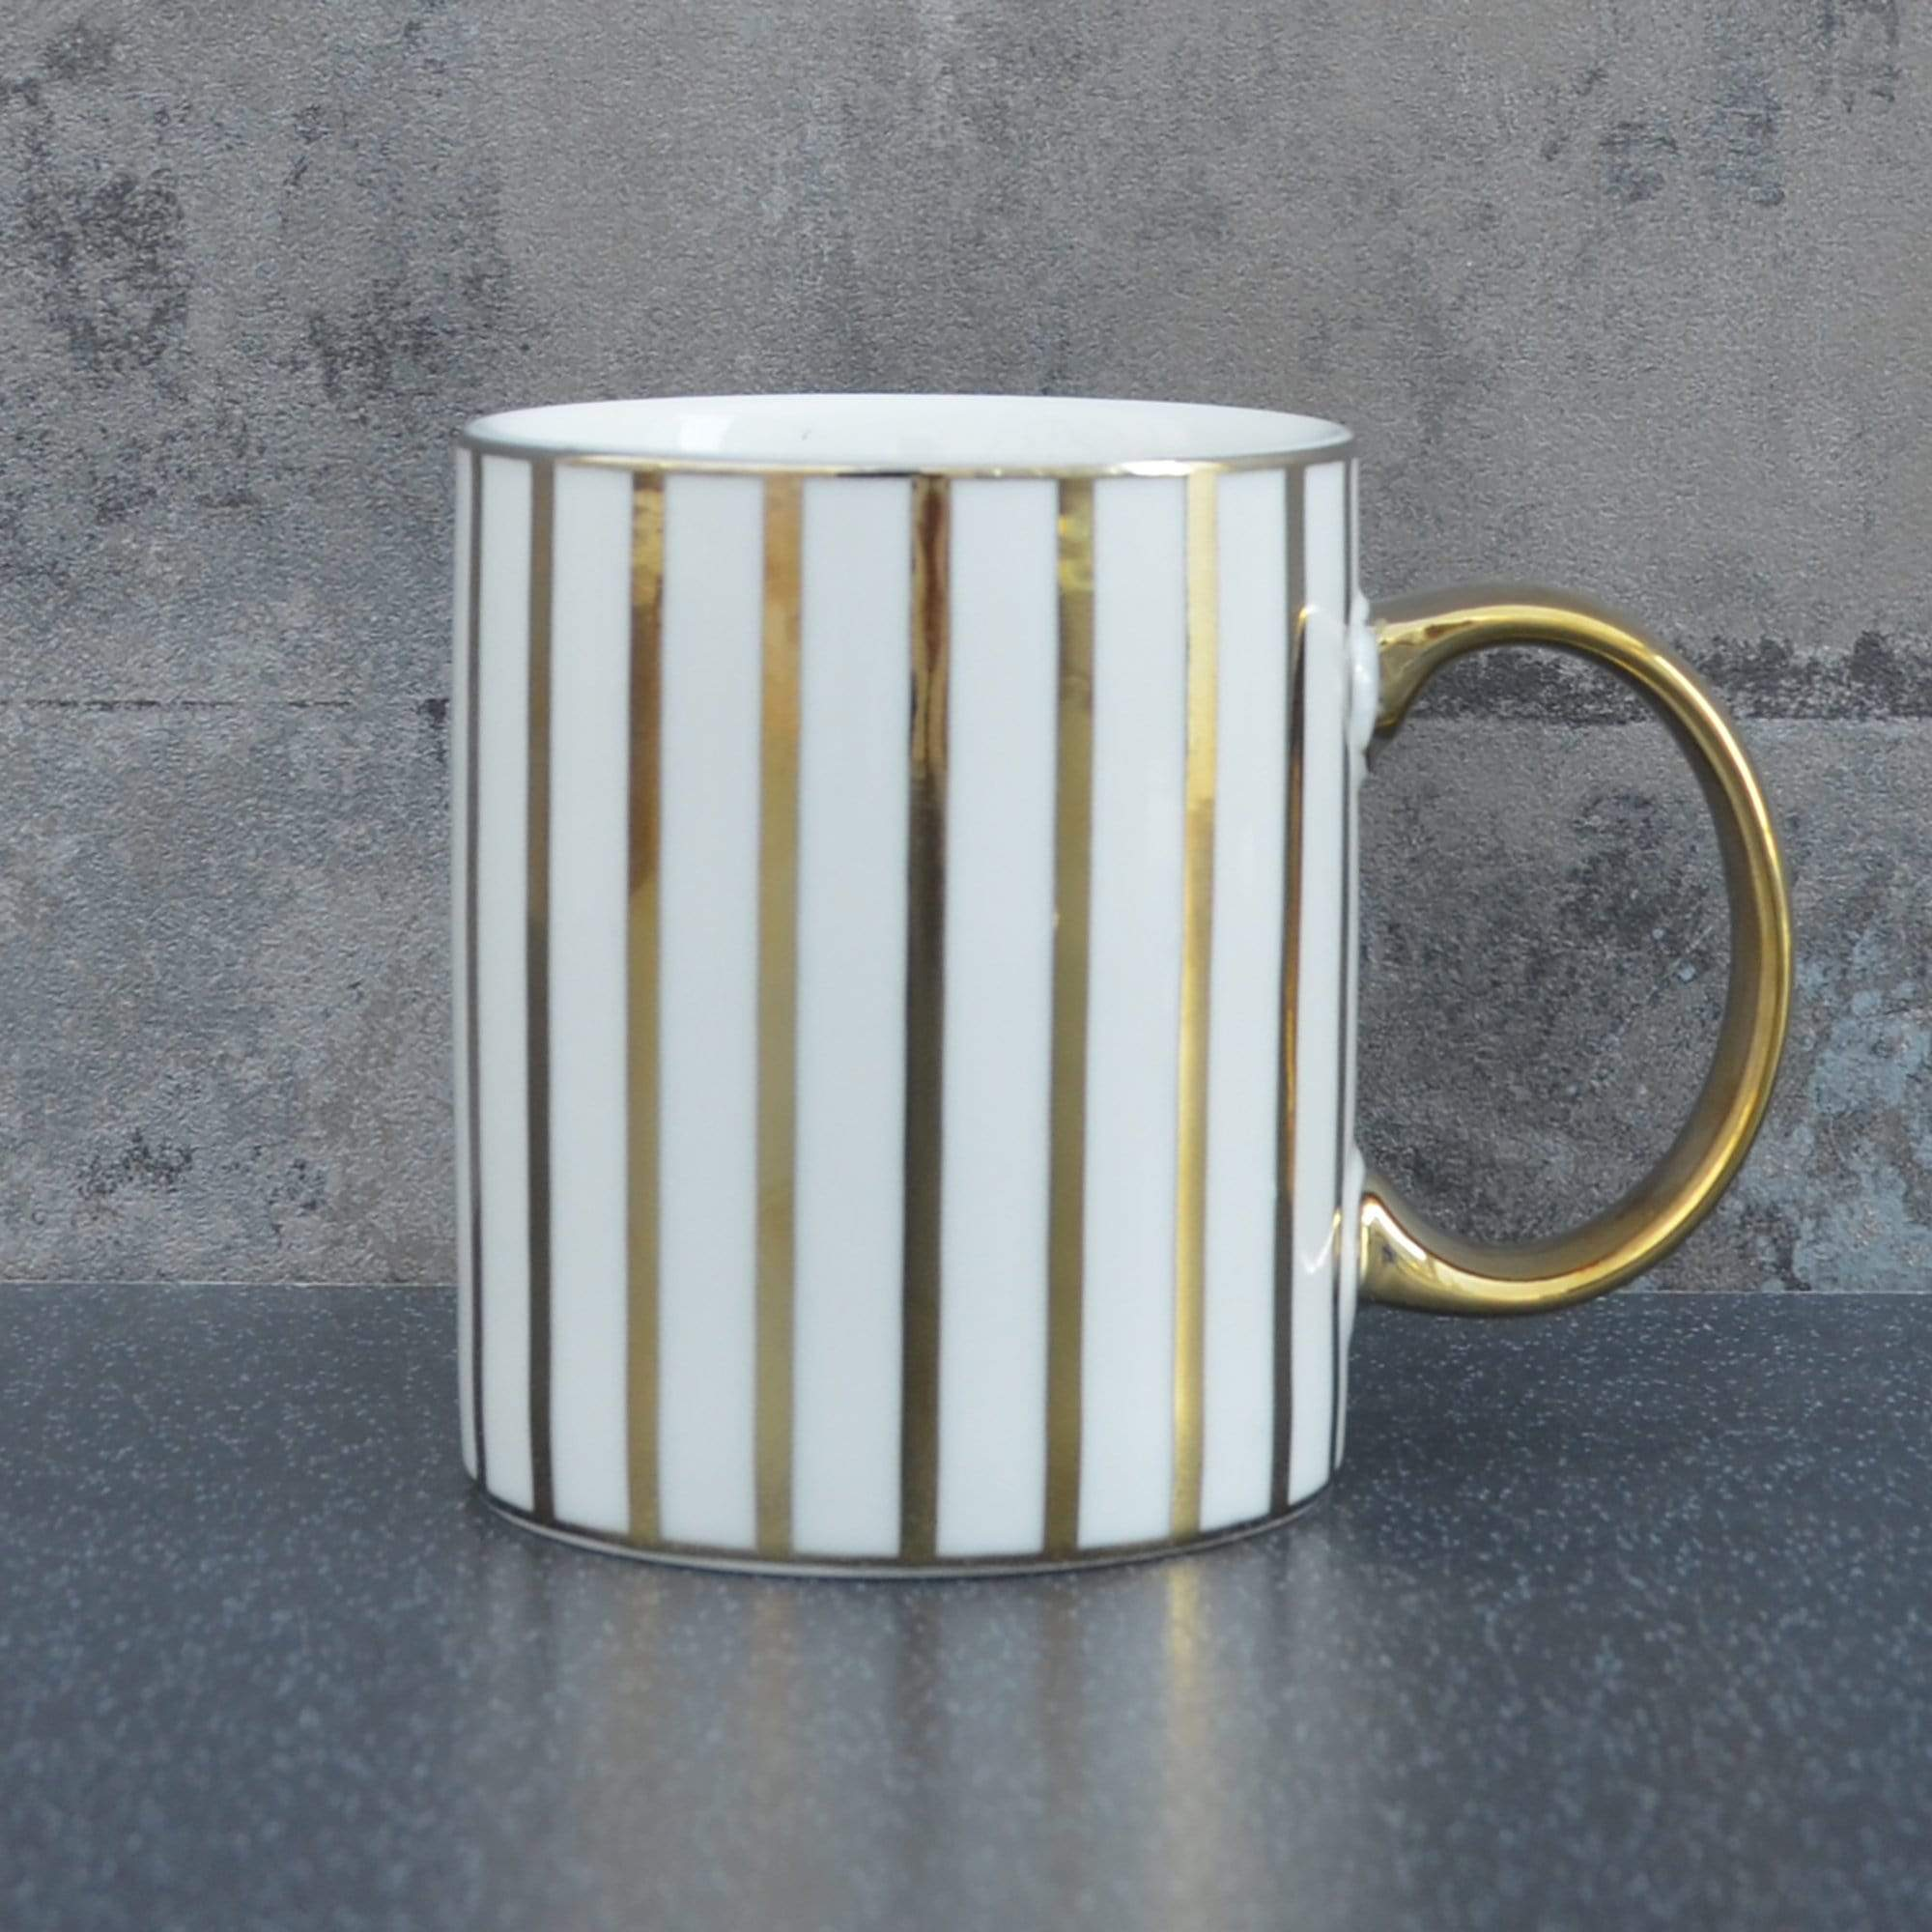 Candlelight Home Mugs Stripy Straight Sided Mug Gold Electroplated 3.7cm 6PK